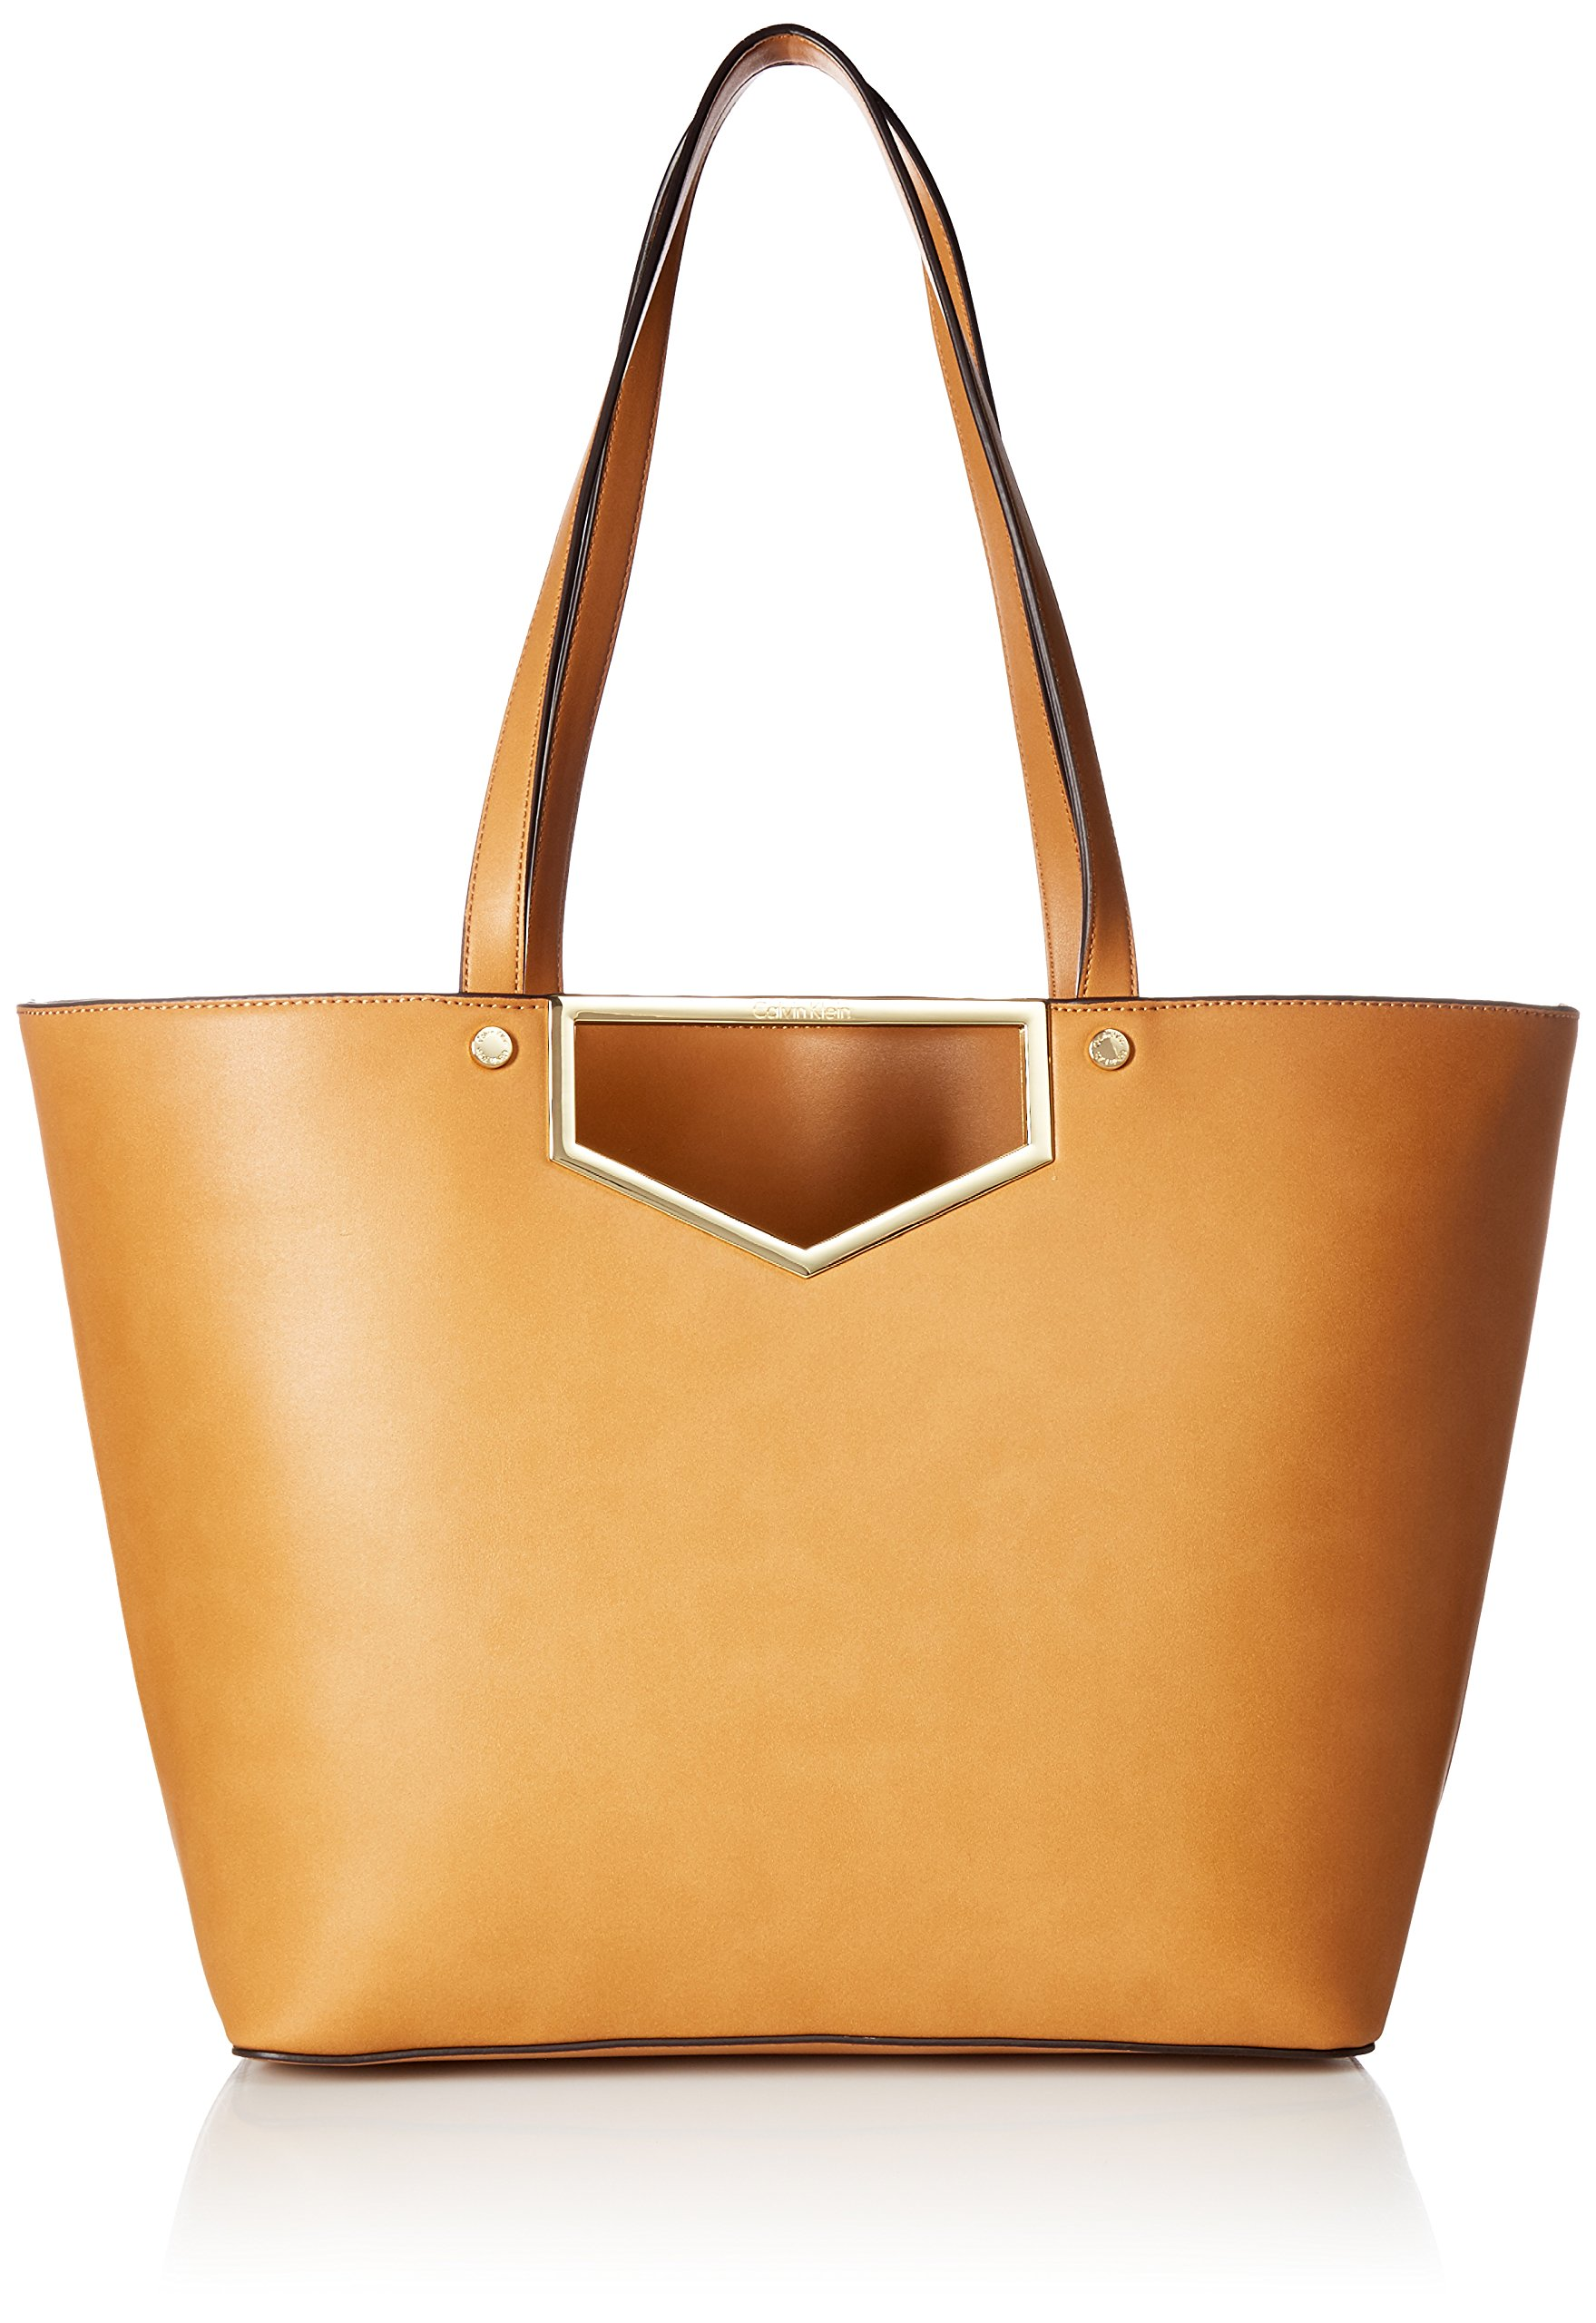 Calvin Klein Novelty Cut Out Hardware Tote, Cashew